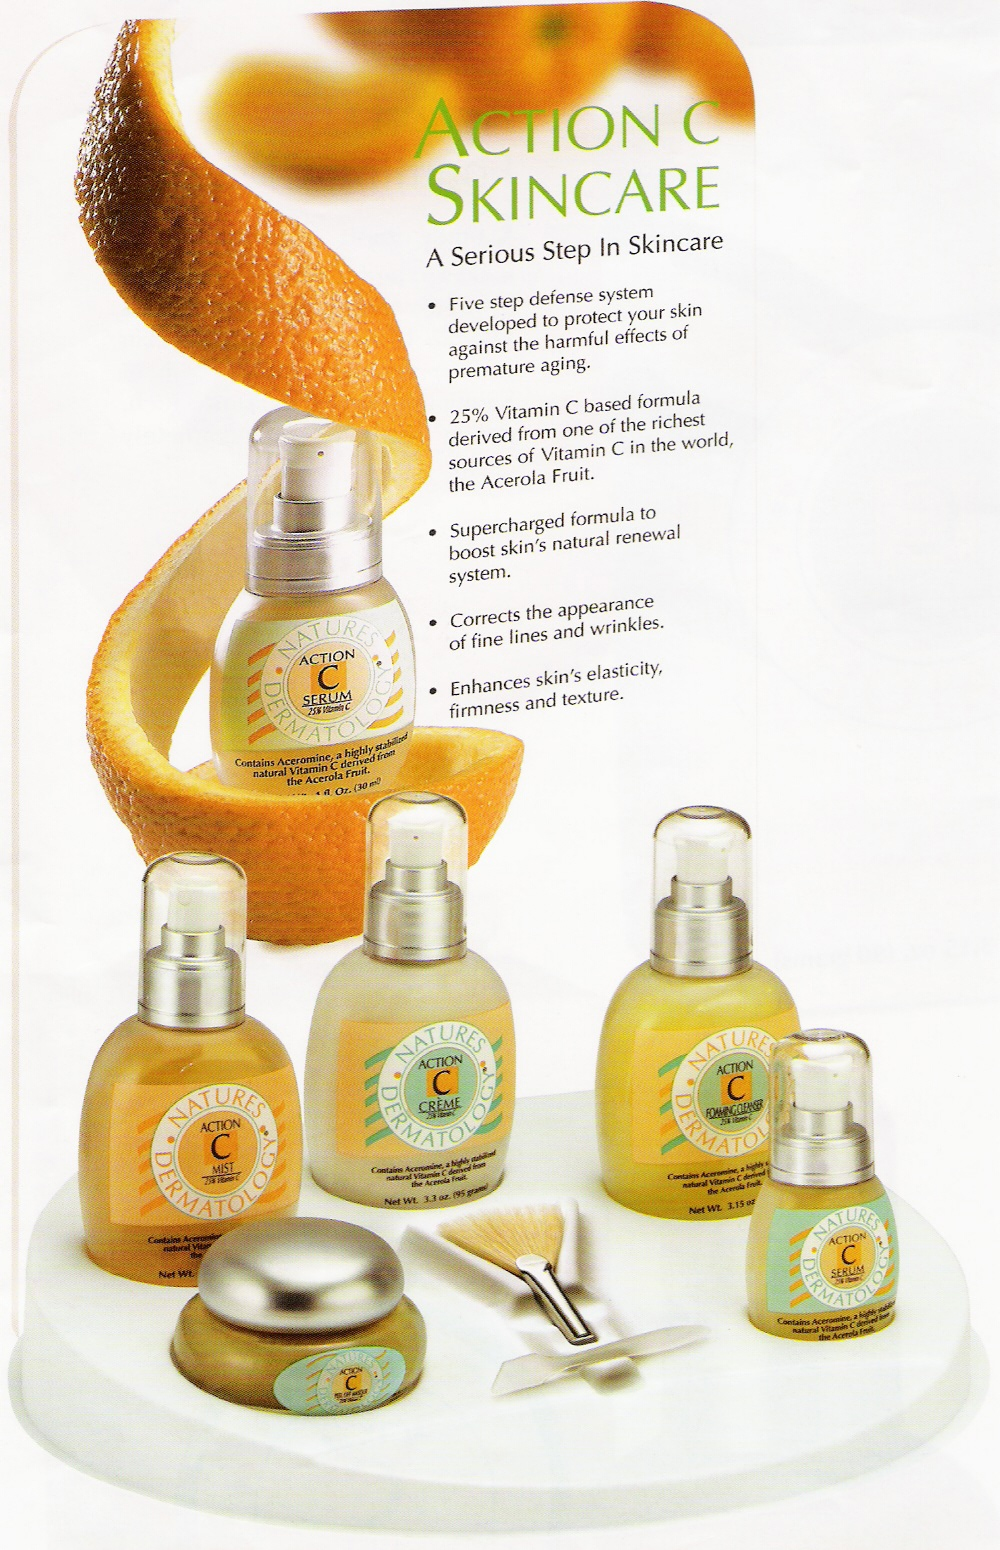 ACTION C SKIN CARE NATURES DERMATOLOGY | Anti-Aging Skin Products from NATURAL DERMATOLOGY and SKIN CARE | Action C is Nature's Dermatology, a High Potency Vitamin C Infusion Therapy System for Women and Men over 30, Acne Prone Skin, Sensitive Skin, Aging or Sun Damaged Face or Skin. For the Best Vitamin C Serum, Vitamin C Cream, Vitamin C Foaming Cleanser, Vitamin C Treatment Peel Off Masque and Vitamin C Moisture Lotion - Visit us at www.natures-dermatology.com